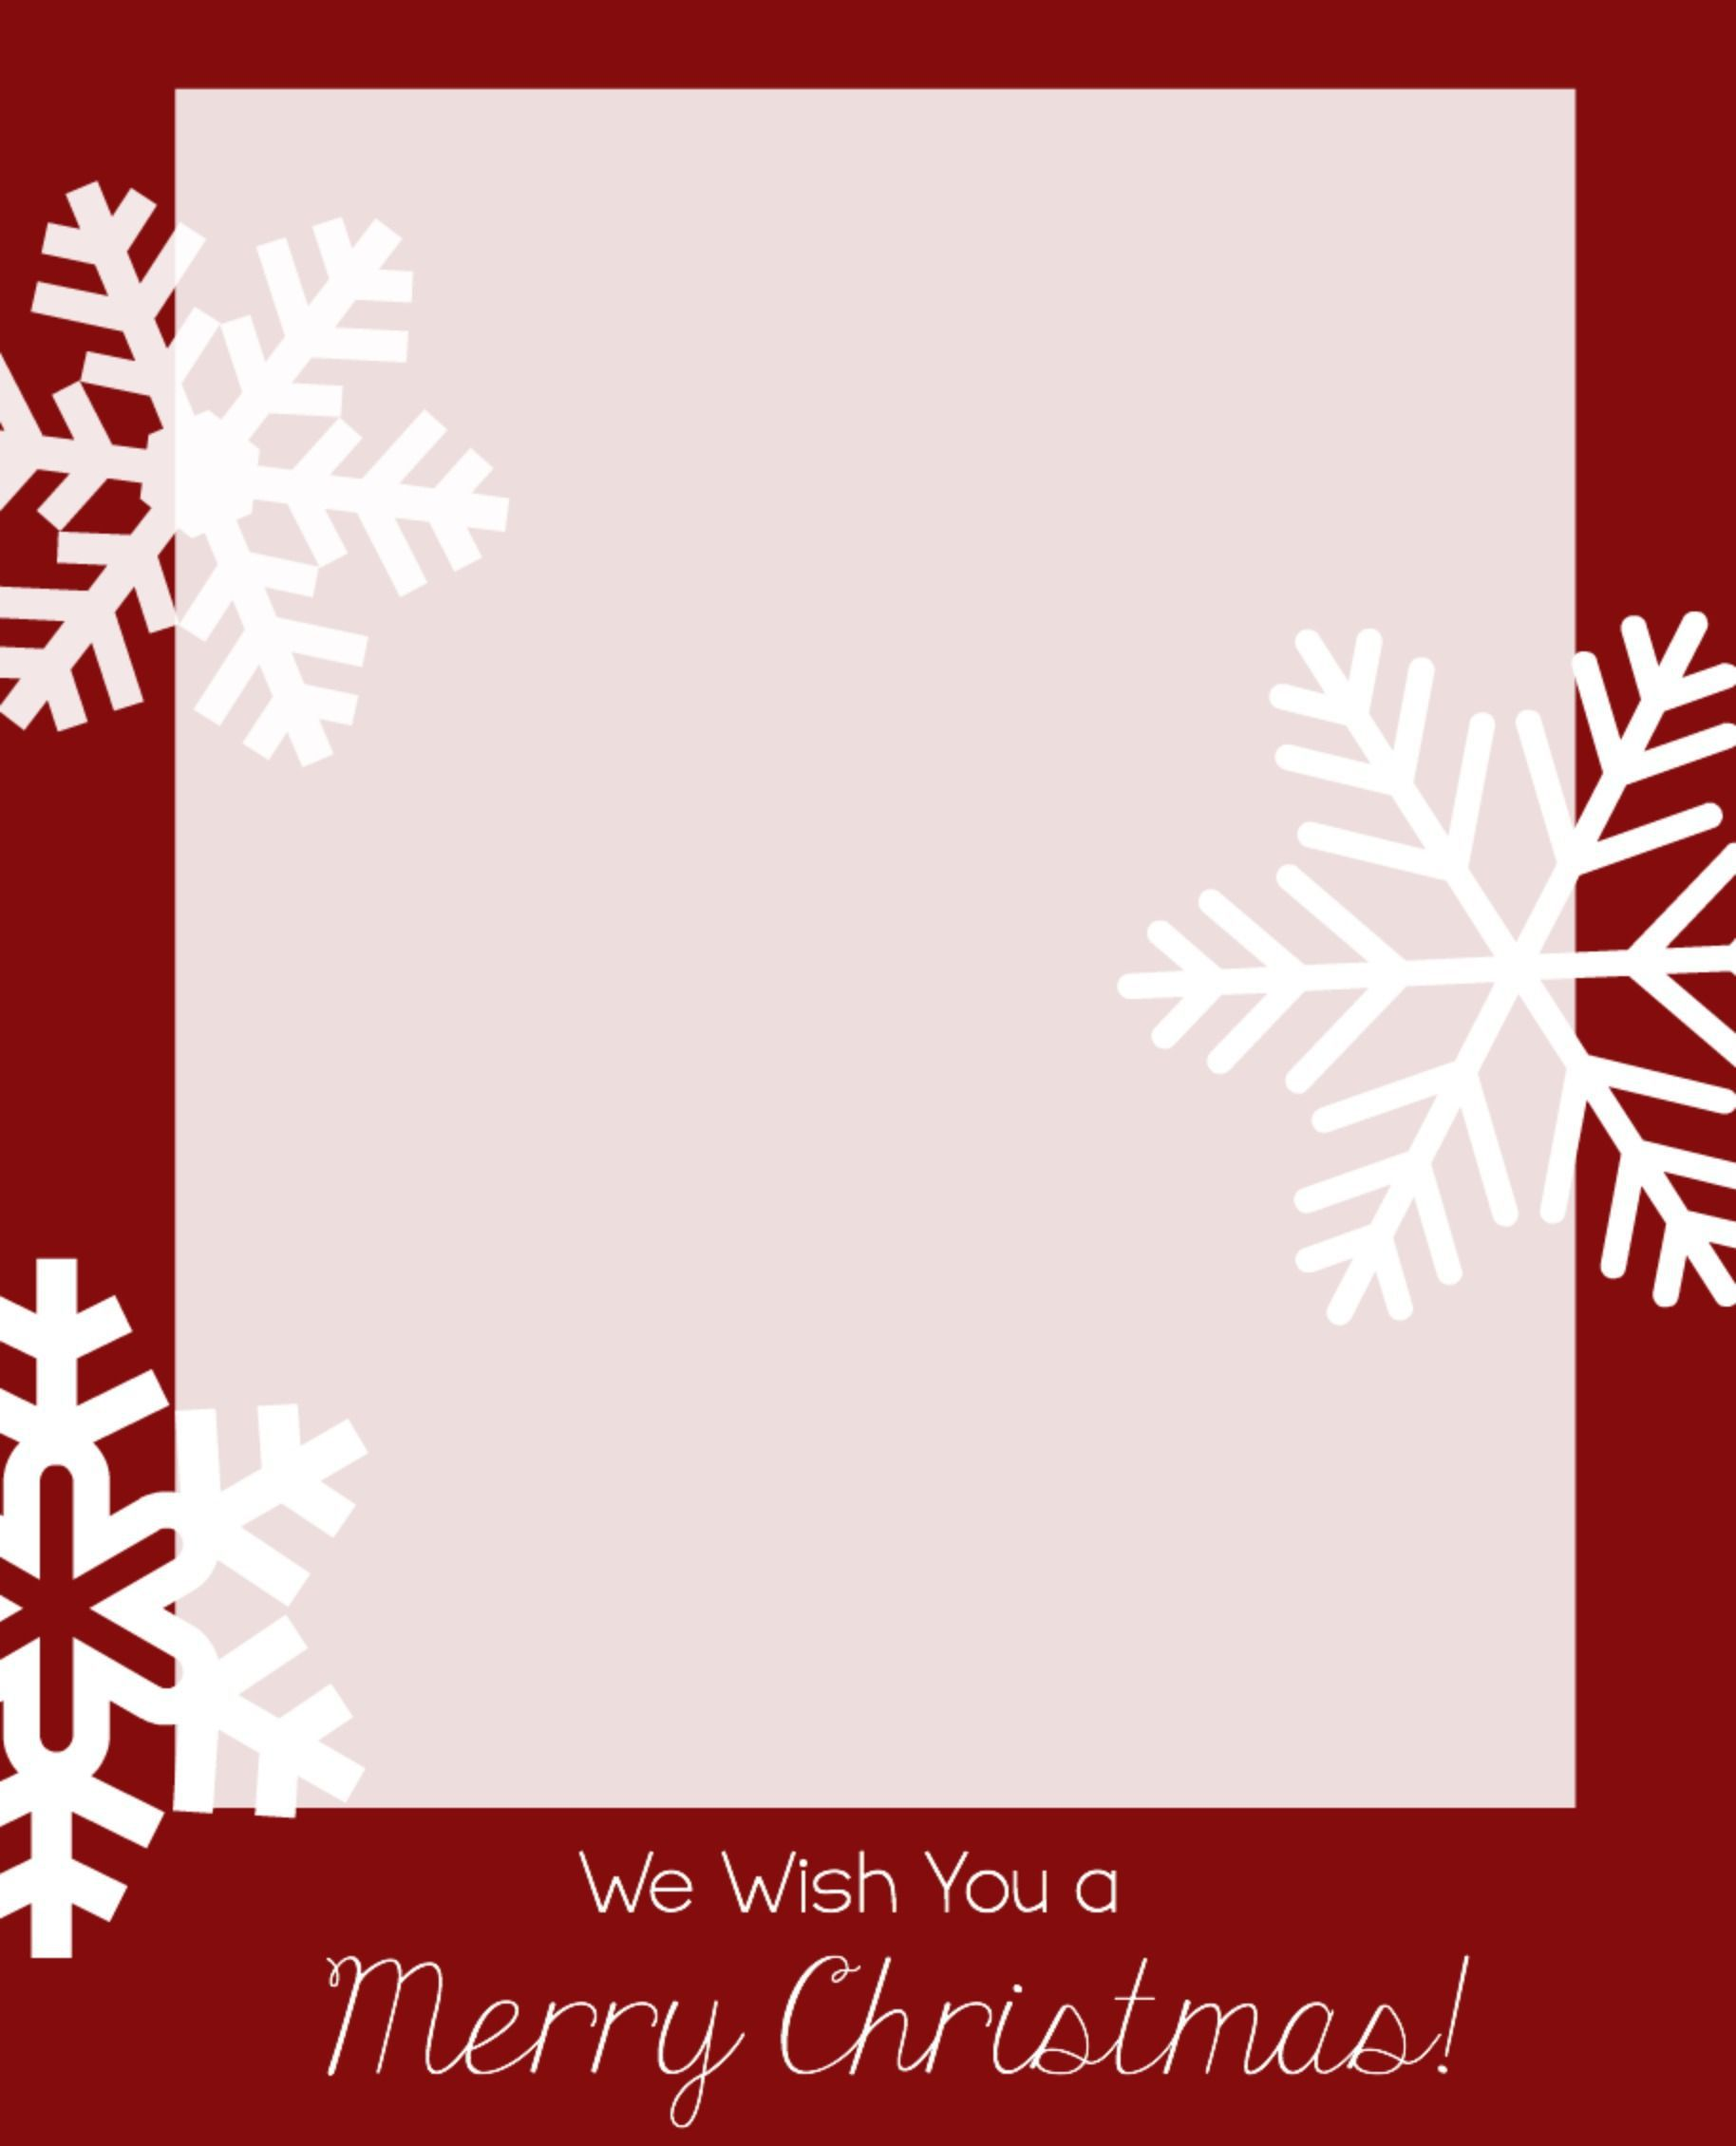 004 Unique Free Download Holiday Card Template Photo Full